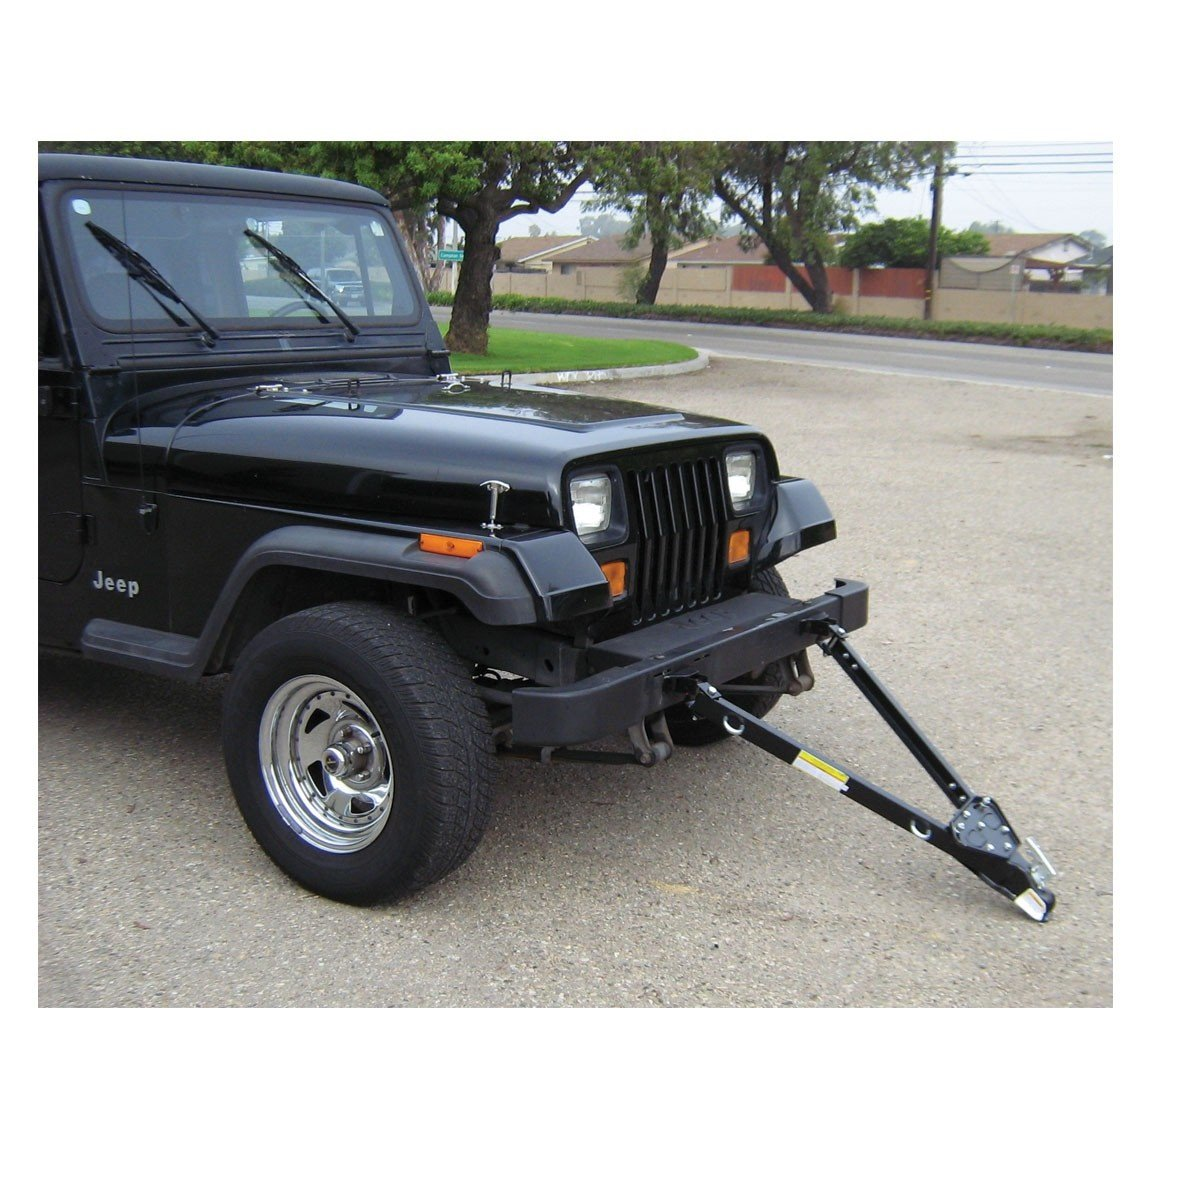 New Quality Folding 5,000 lb. Capacity Adjustable Tow Bar with Coupler Parking Towing Pulling Car Boat Trailer 43 in. Extender